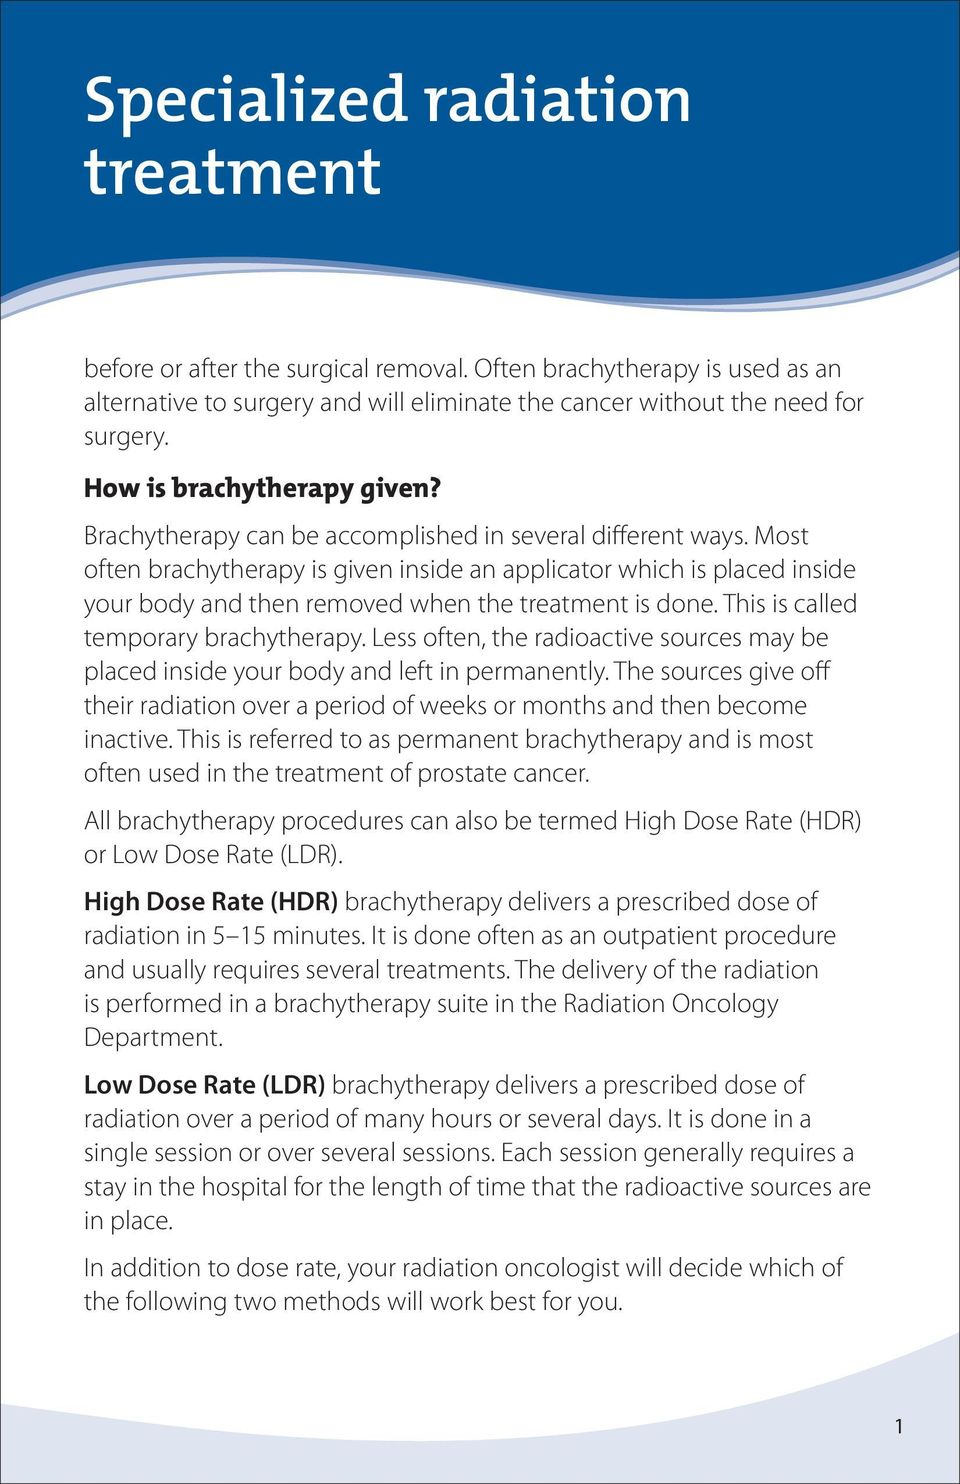 Most often brachytherapy is given inside an applicator which is placed inside your body and then removed when the treatment is done. This is called temporary brachytherapy.